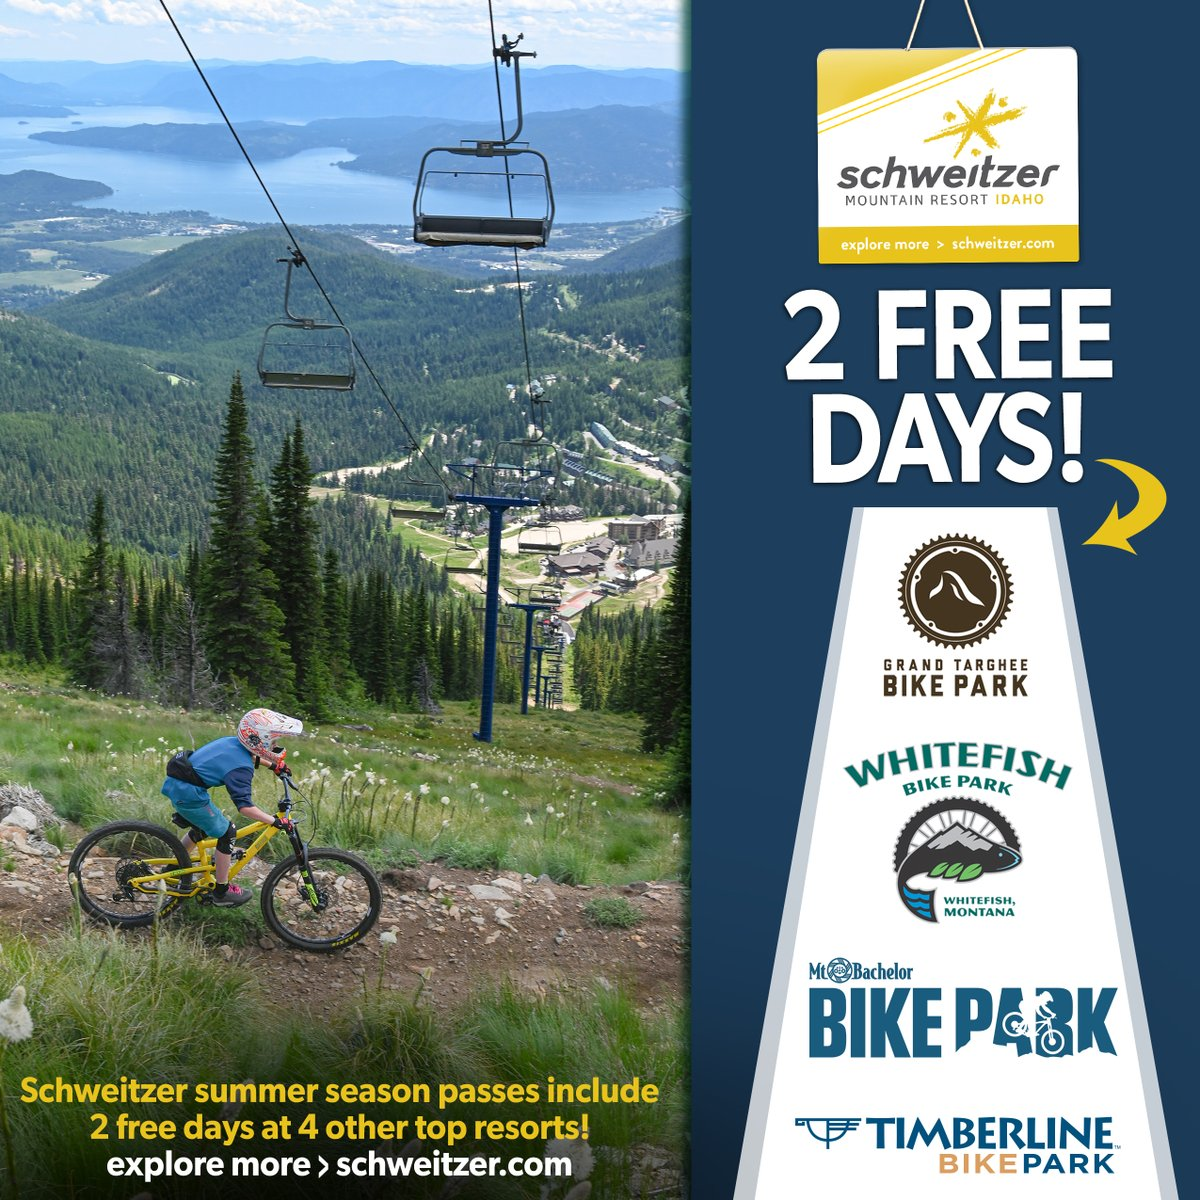 Schweitzer opens for summer 2 weeks from today! Did you know your Schweitzer Summer Season Pass gets you 2 FREE days each at @grandtarghee, @SkiWhitefish, @mtbachelor & @timberlinelodge #BikeParks?!? https://www.schweitzer.com/plan/summer-season-passes/ … #schweitzerlife #summer #bikepark #mountainbikepic.twitter.com/vizkTkAyet